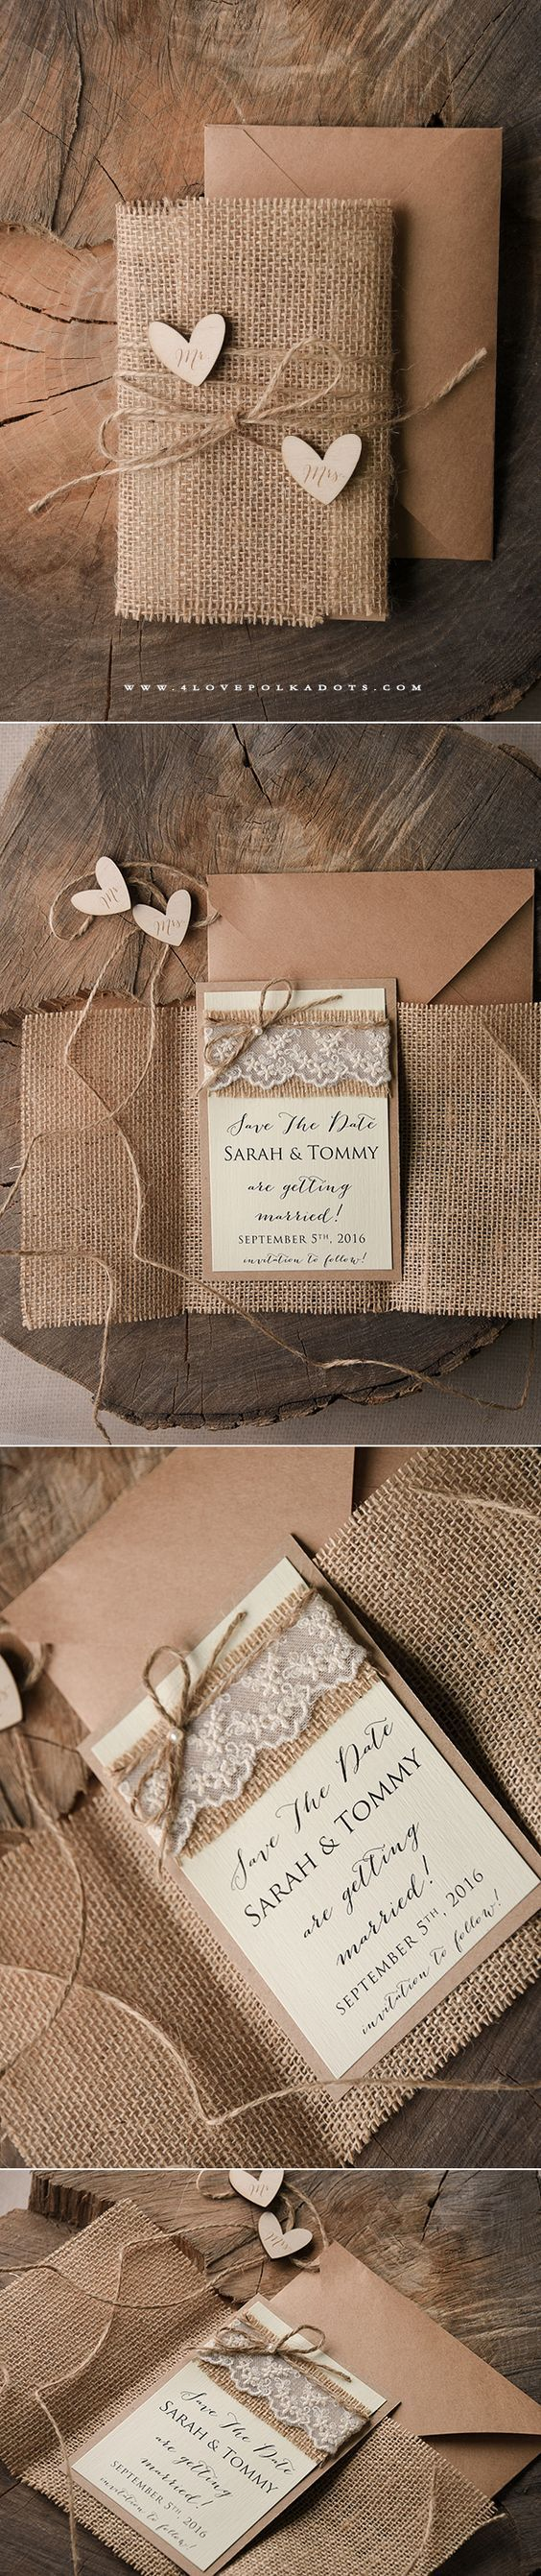 Lovely Wedding Save The Date Card With Wooden Tags.